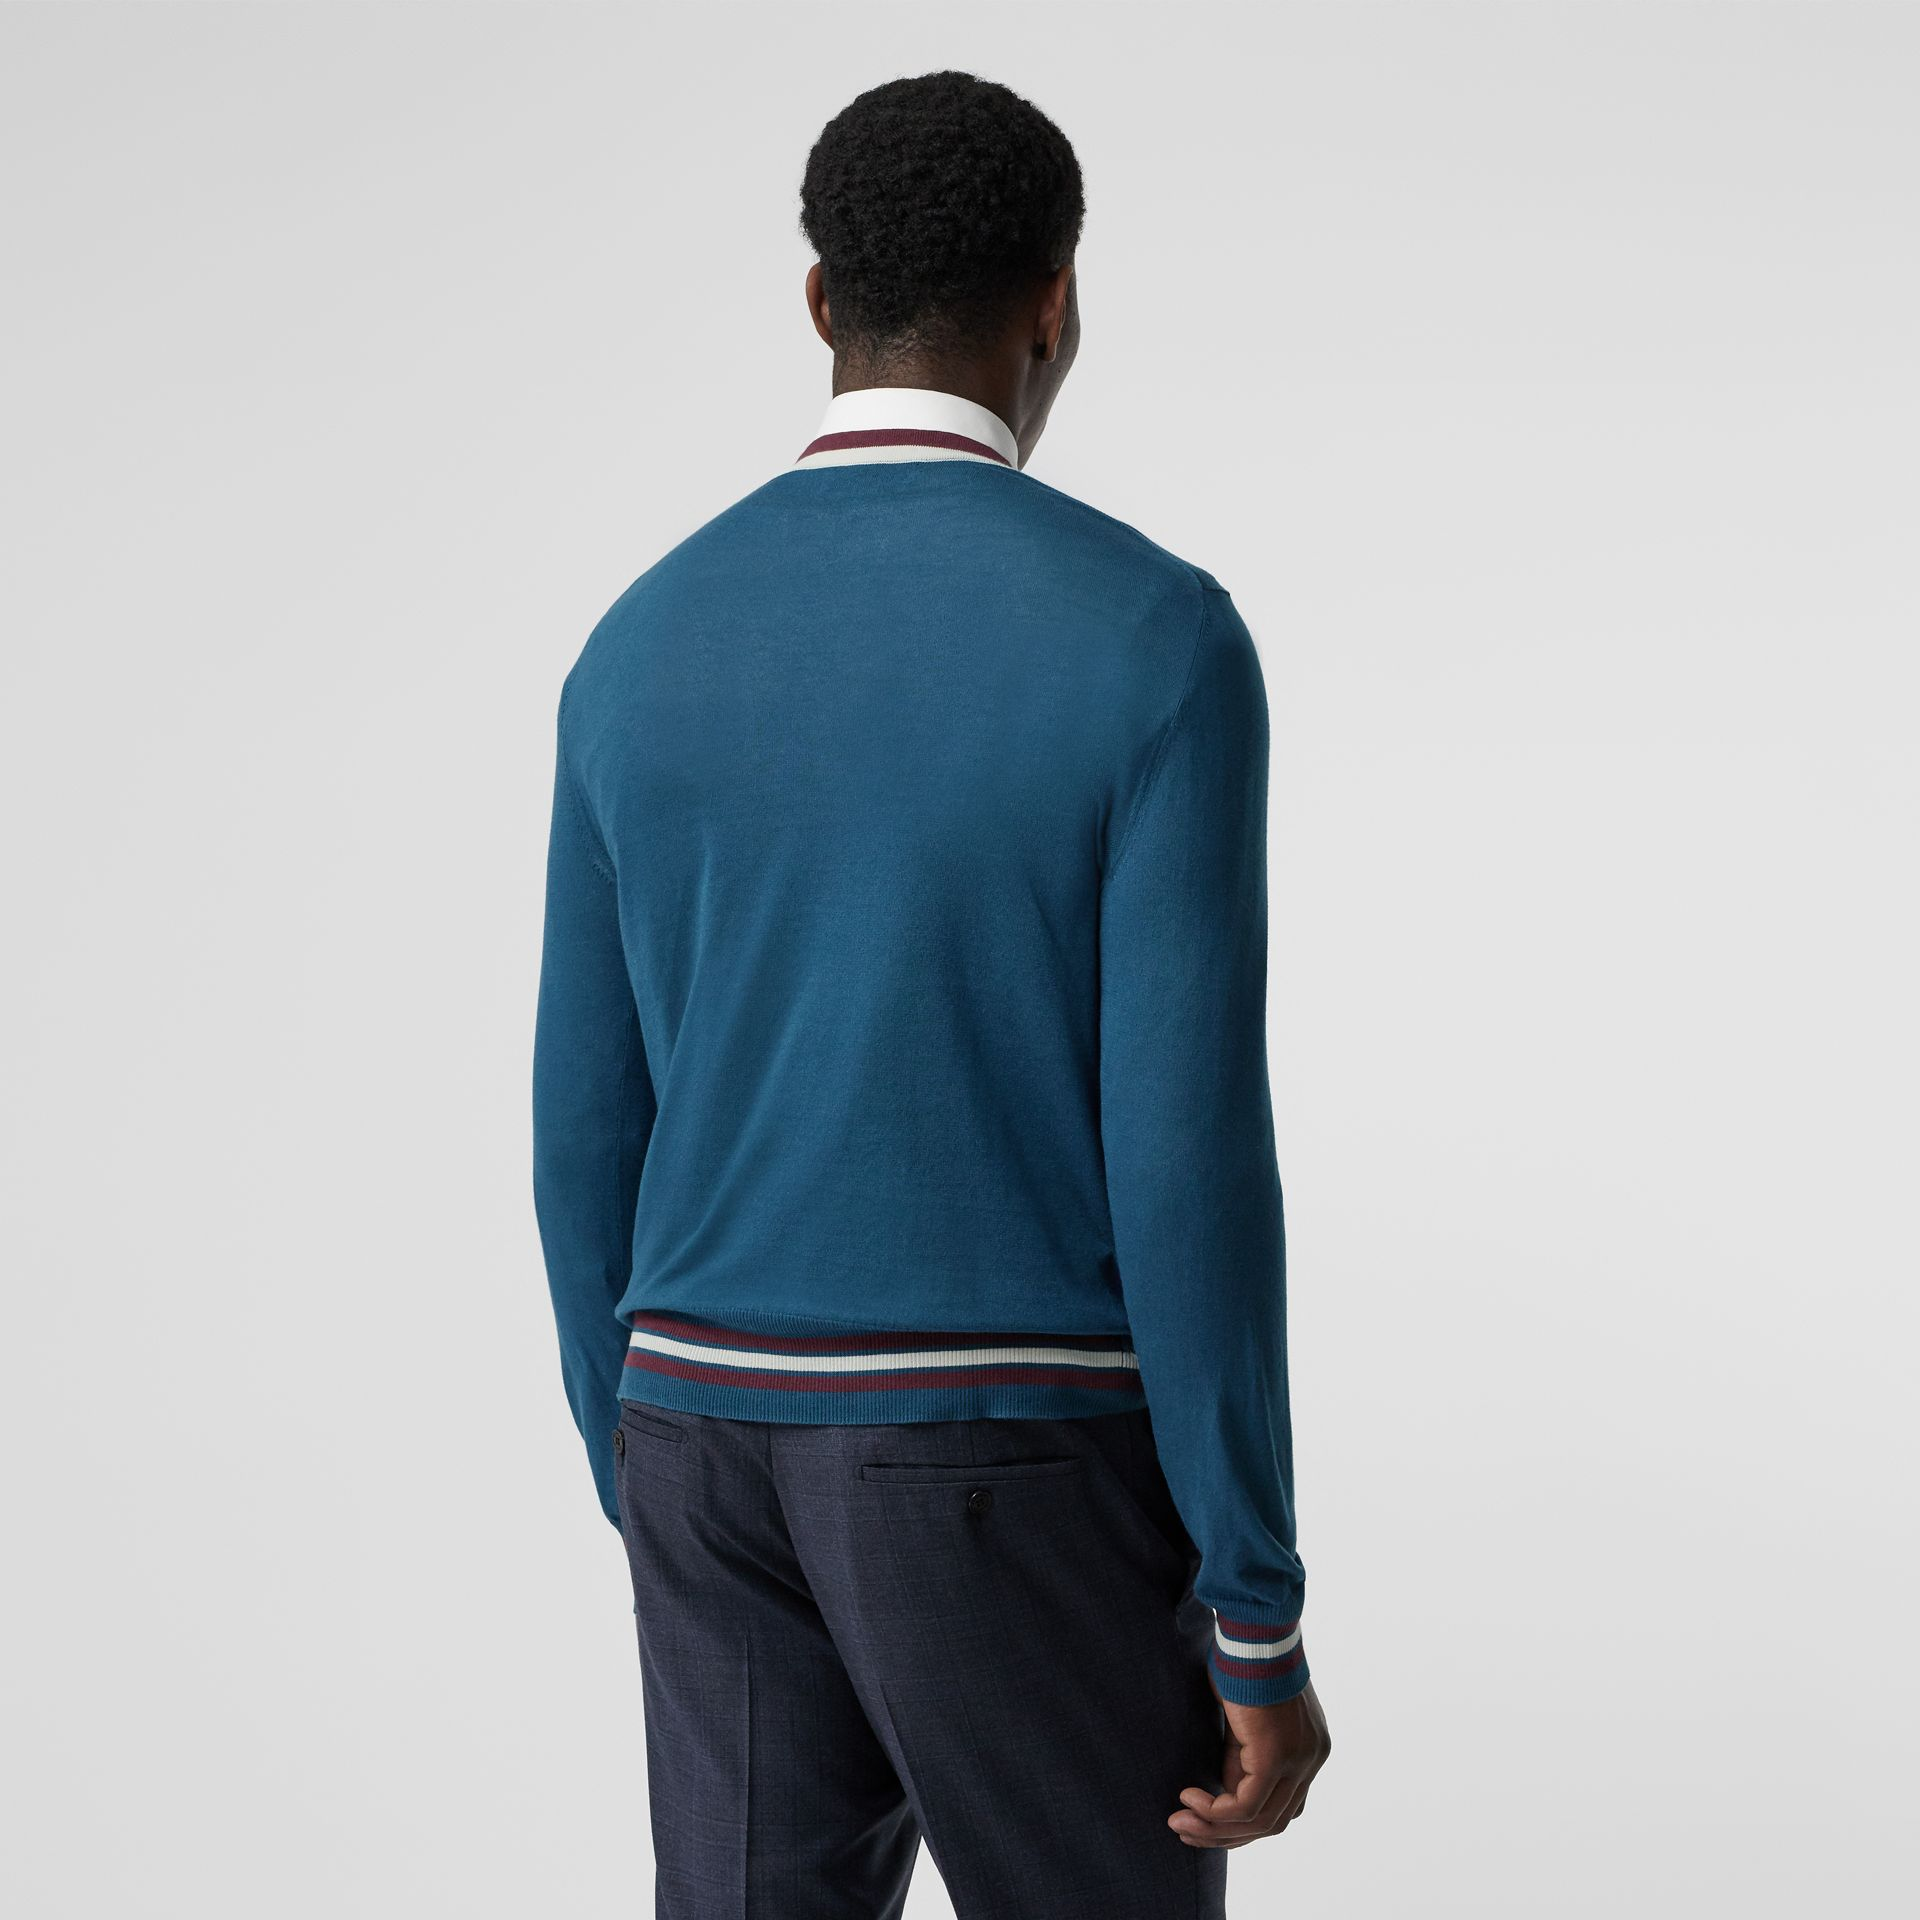 Embroidered Crest Cotton Silk Sweater in Dark Teal Blue - Men | Burberry - gallery image 2